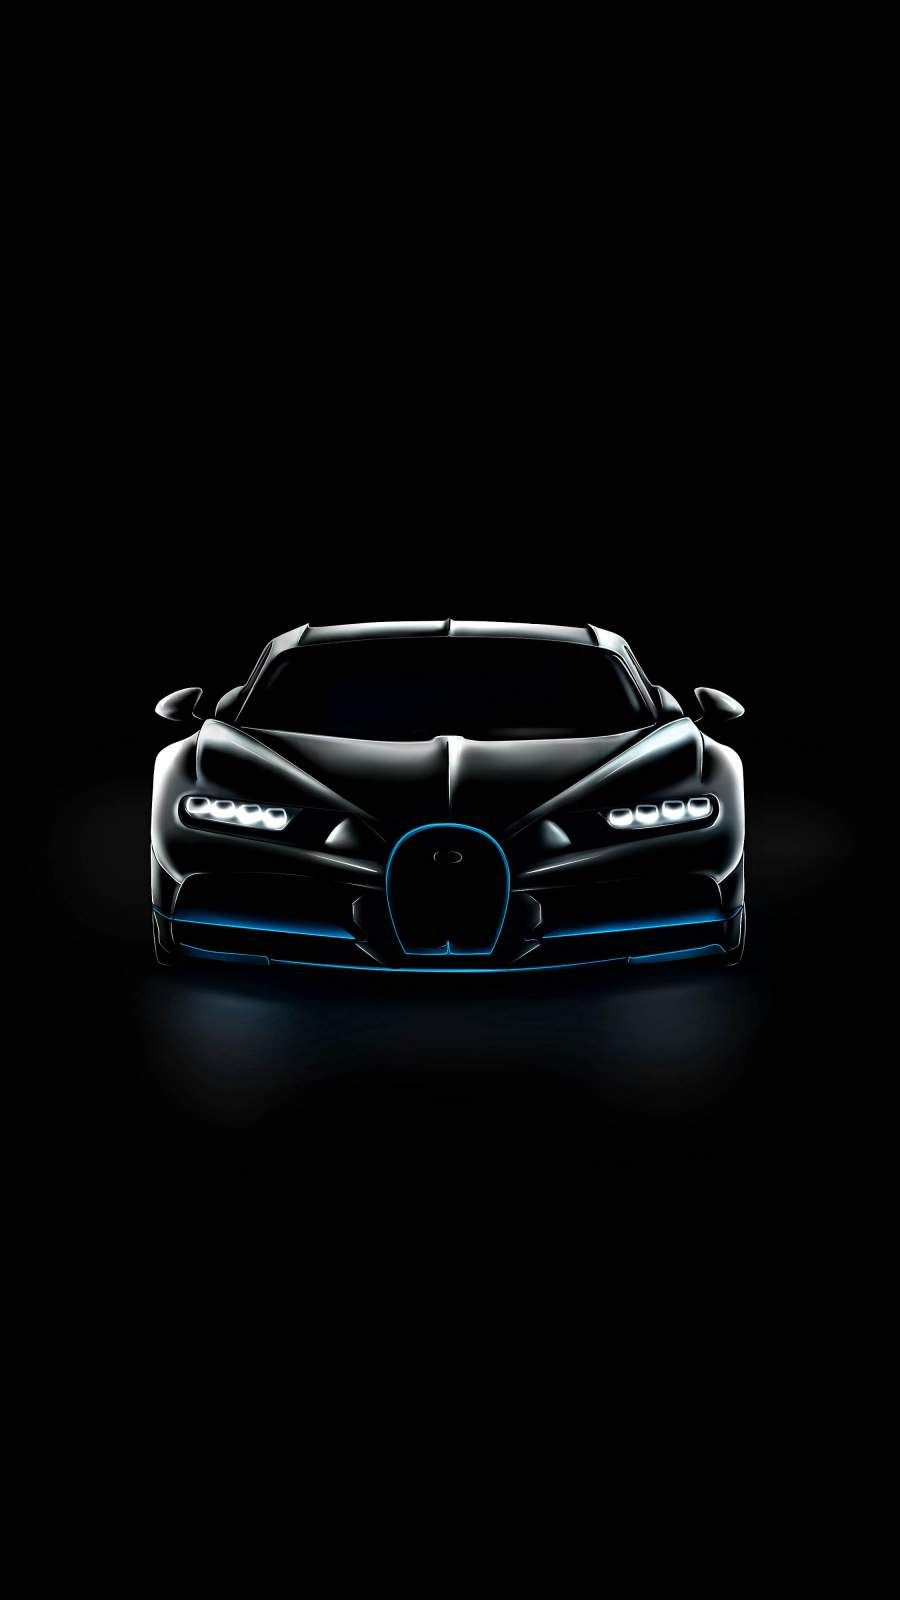 Bugatti Chiron Black Iphone Wallpaper Bugatti Chiron Black Bugatti Wallpapers Super Cars